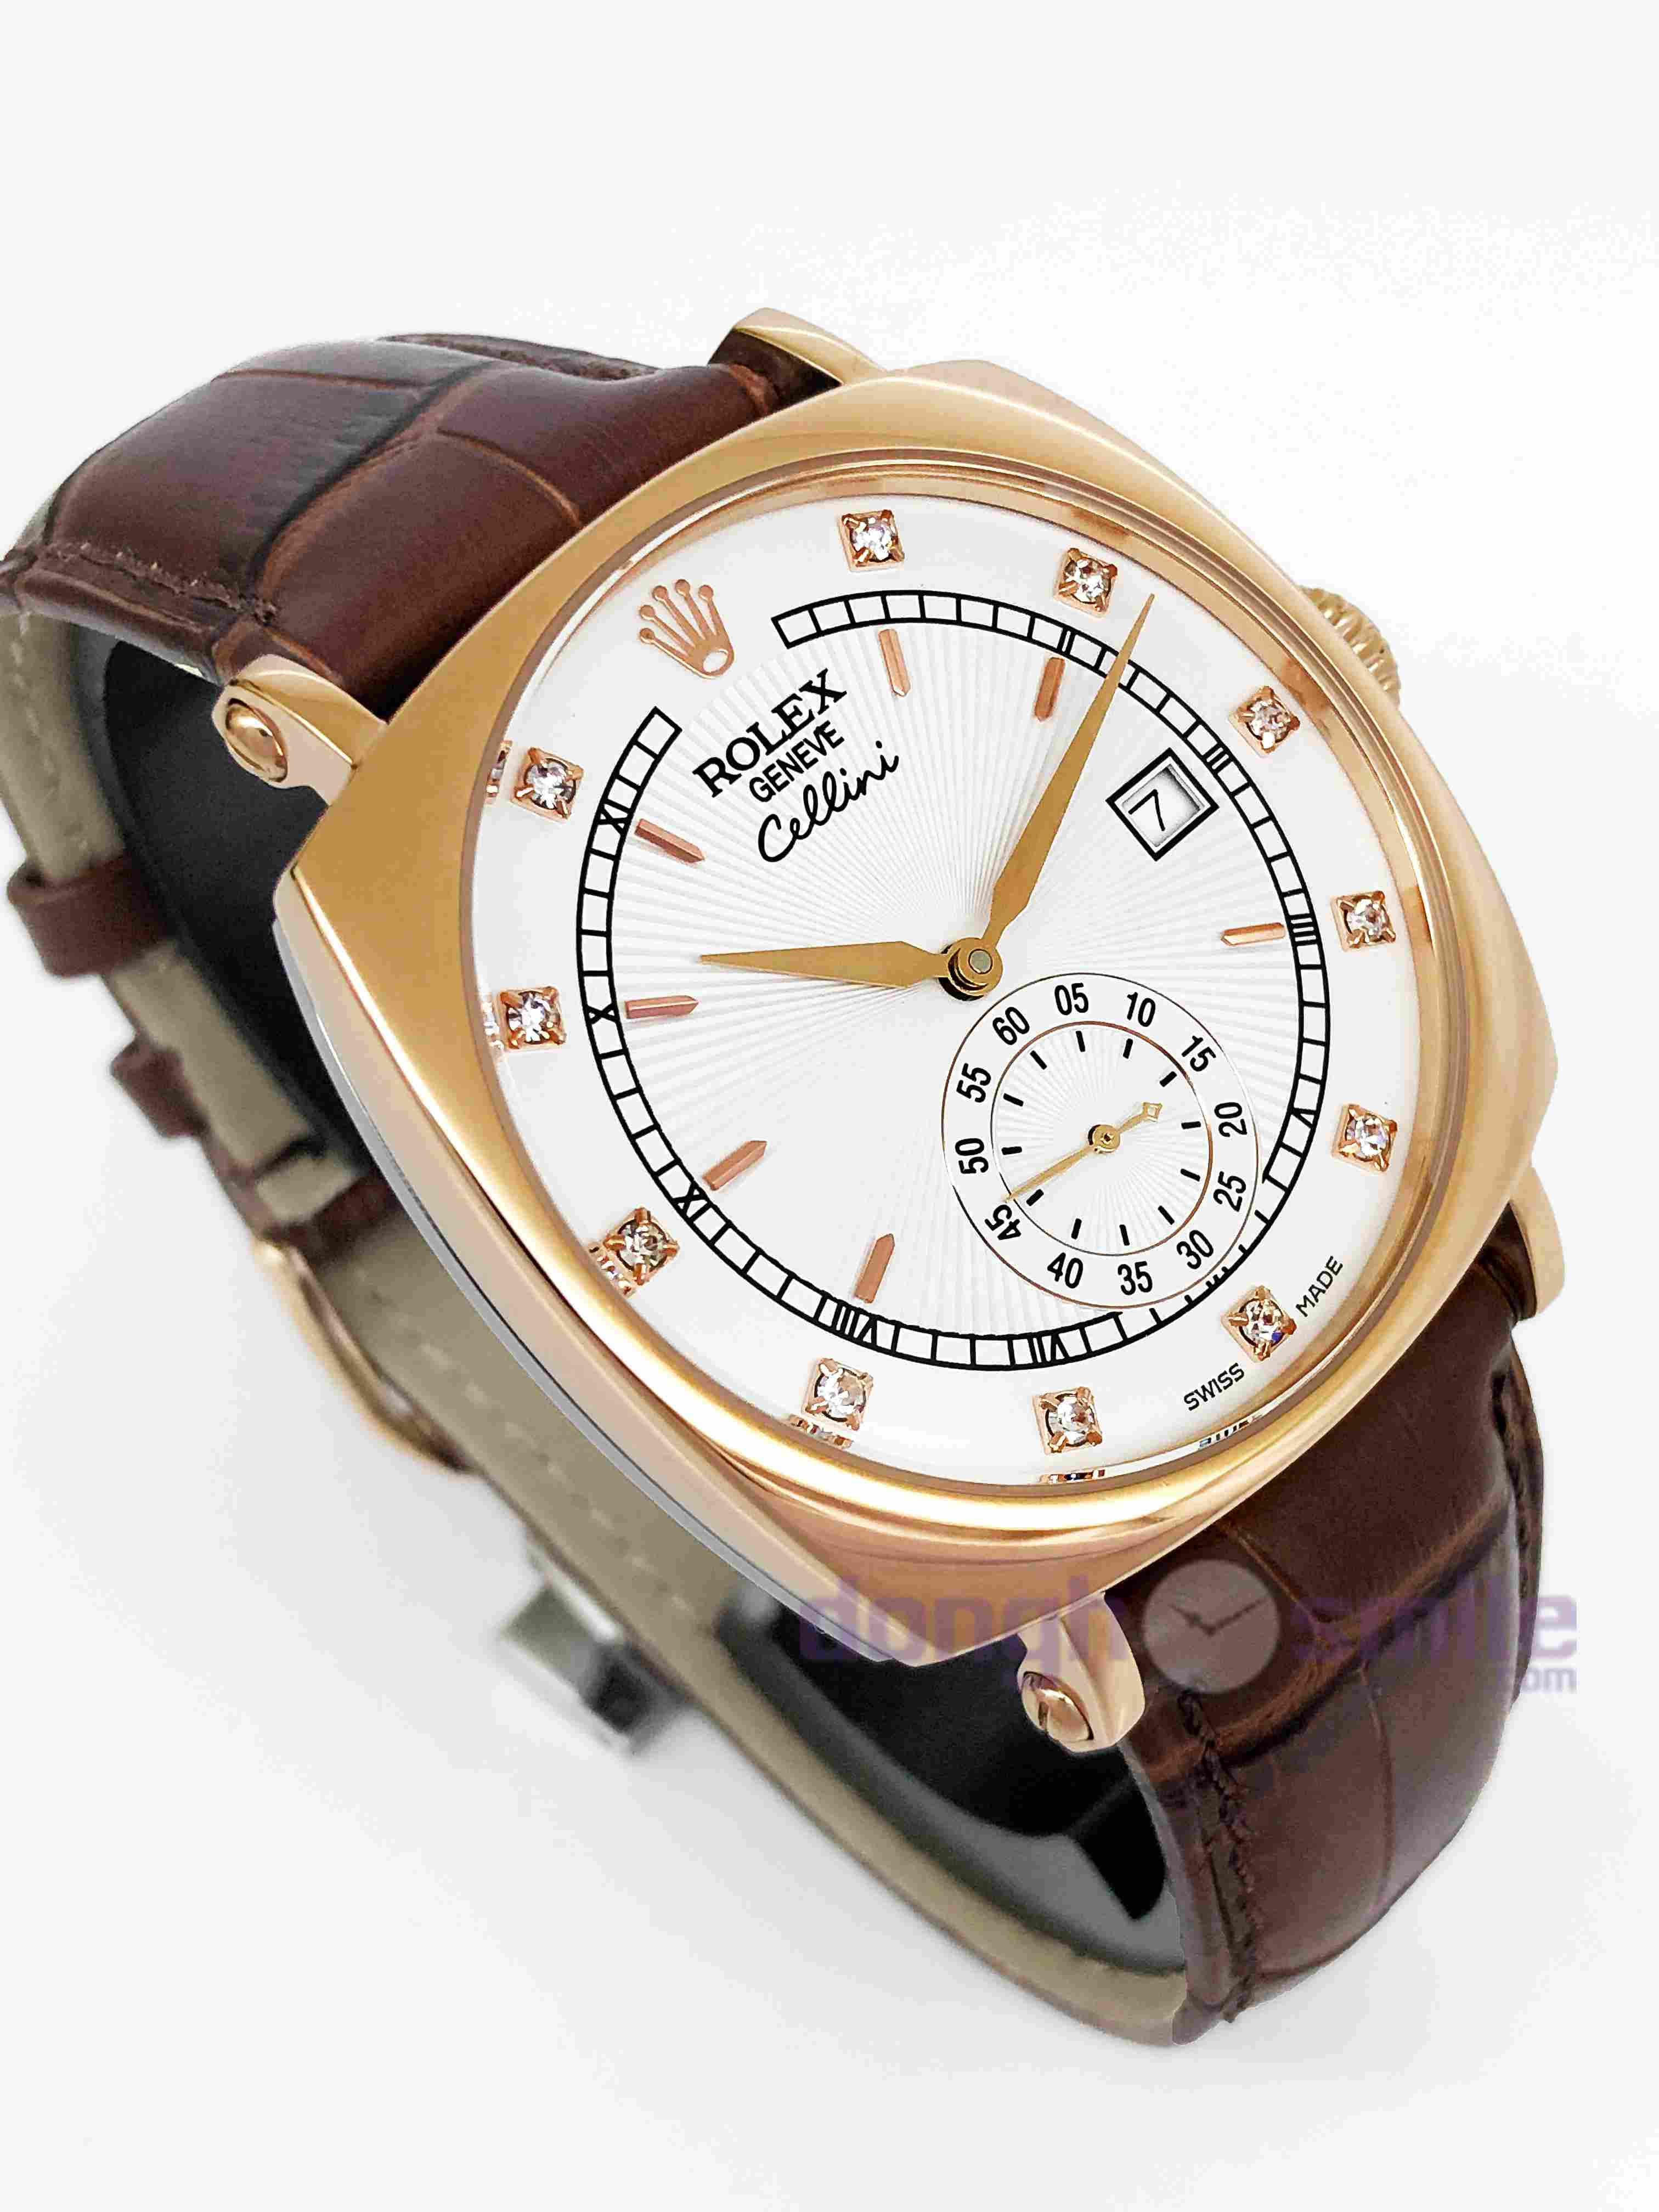 dong-ho-rolex-cellini-nam-may-tu-dong-a-rl05-01